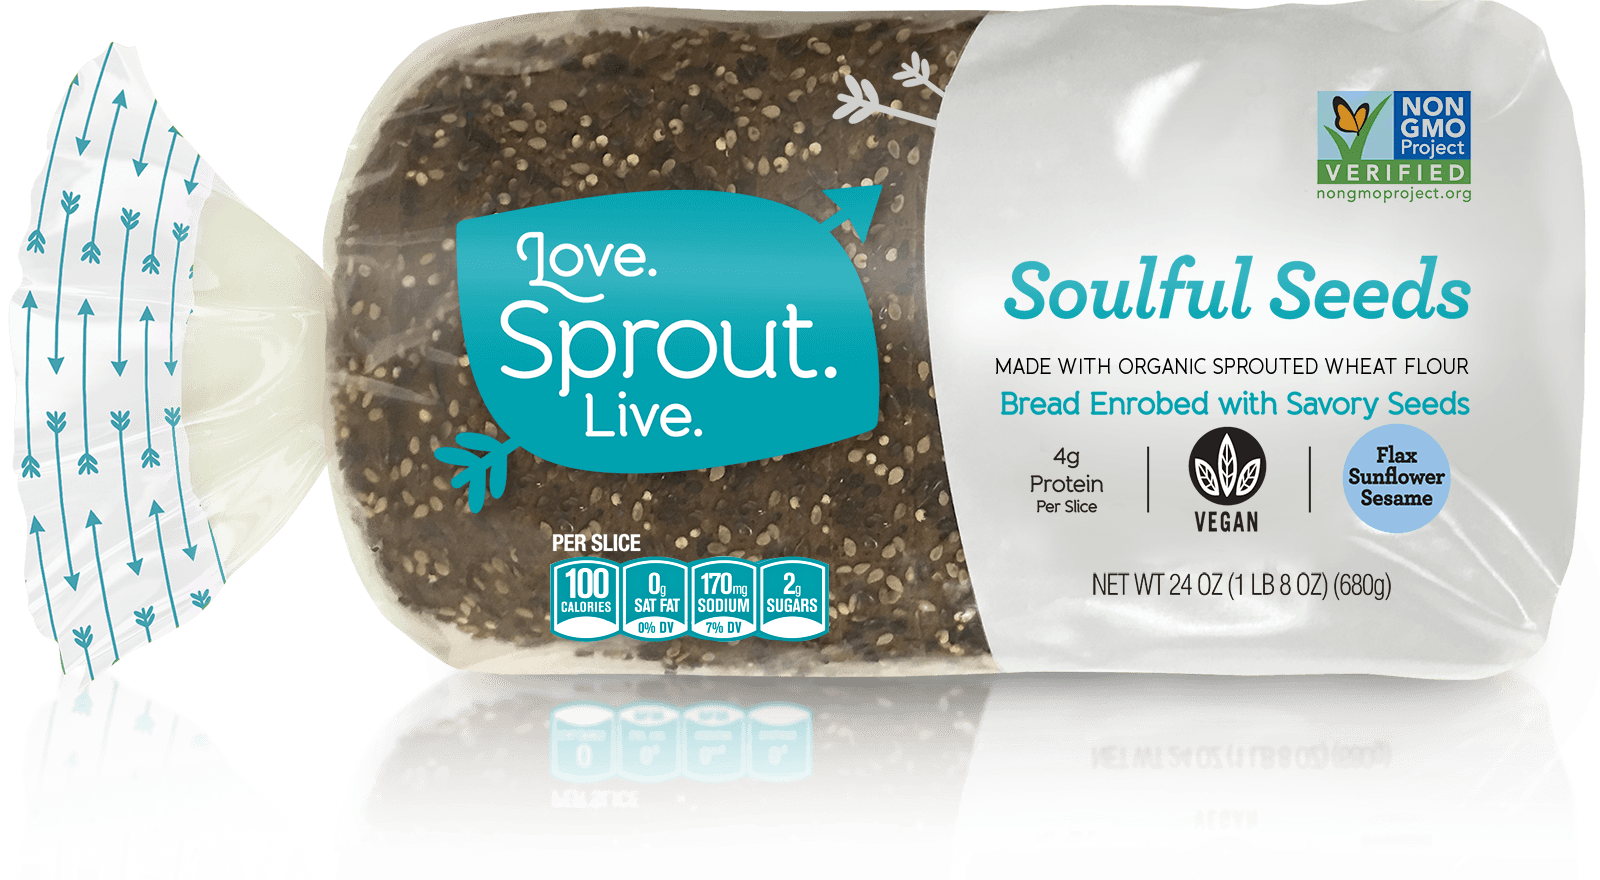 Soulful Seeds - Feed your need for seeds.